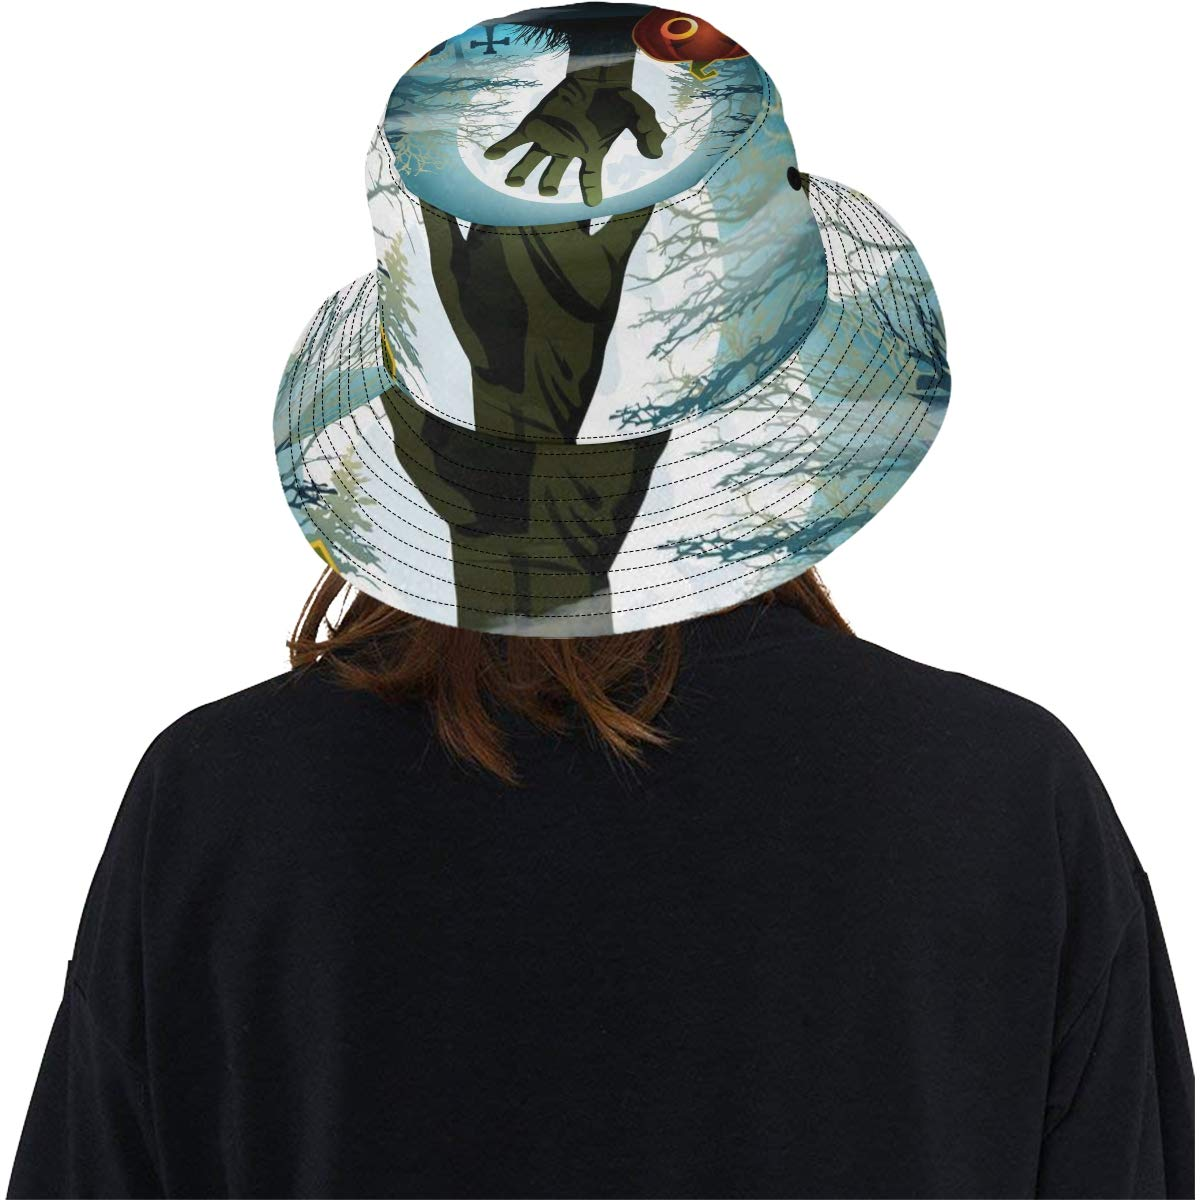 Halloween Thrilling Zombie Hand New Summer Unisex Cotton Fashion Fishing Sun Bucket Hats for Kid Teens Women and Men with Customize Top Packable Fisherman Cap for Outdoor Travel